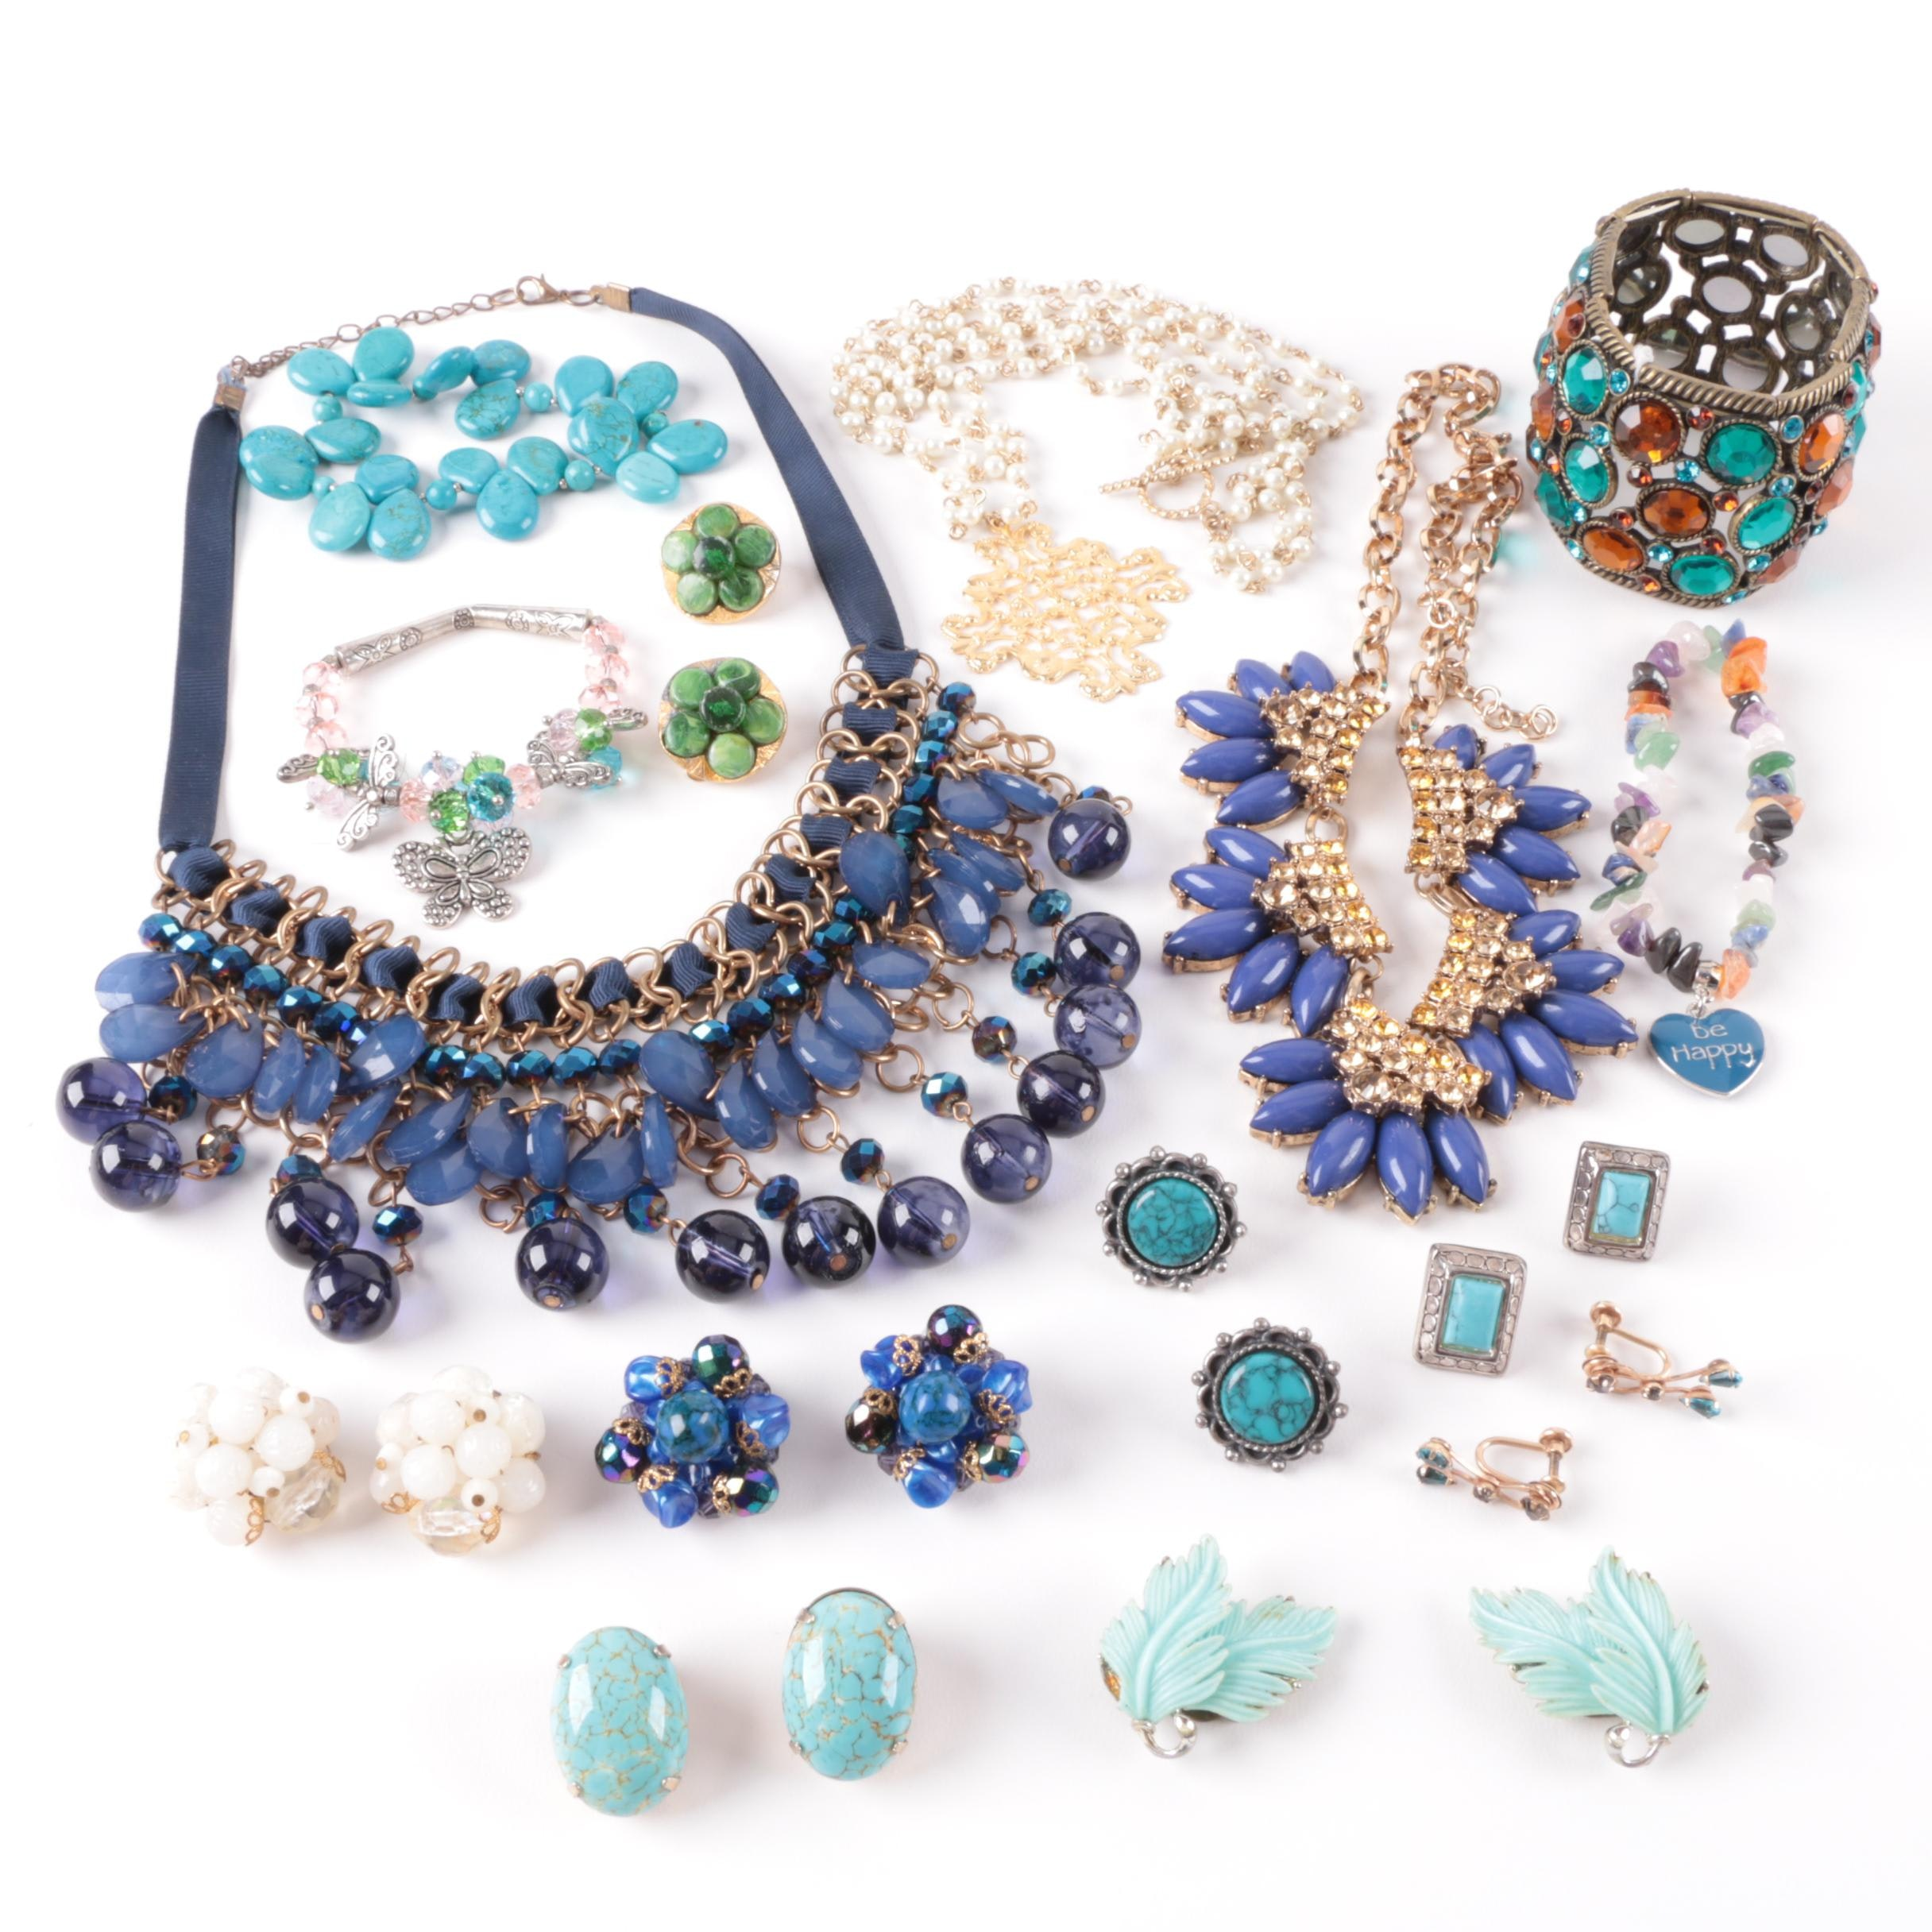 Amethyst, Agate, and Magnesite Jewelry Selection Including Lisner and Sancrest